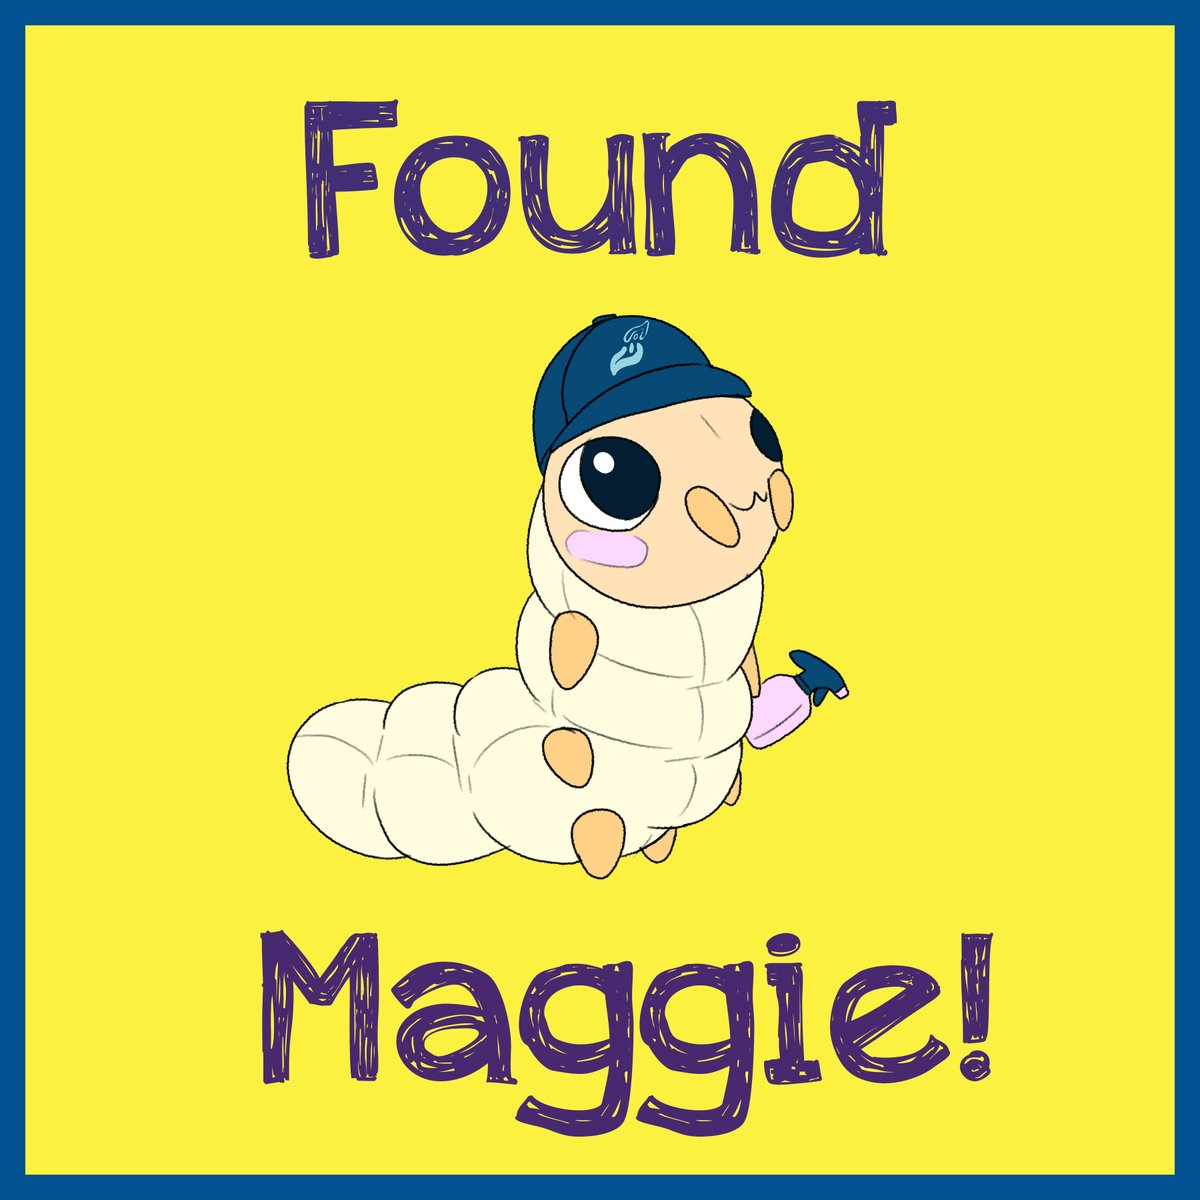 Were you able to find our friend? #wheresmaggie #spauldingdecon #spaulding #hoard #hoarding #hoarders #crimescenecleaners #crimescenecleanup #extremecleaning https://t.co/ldNcQwMXCc